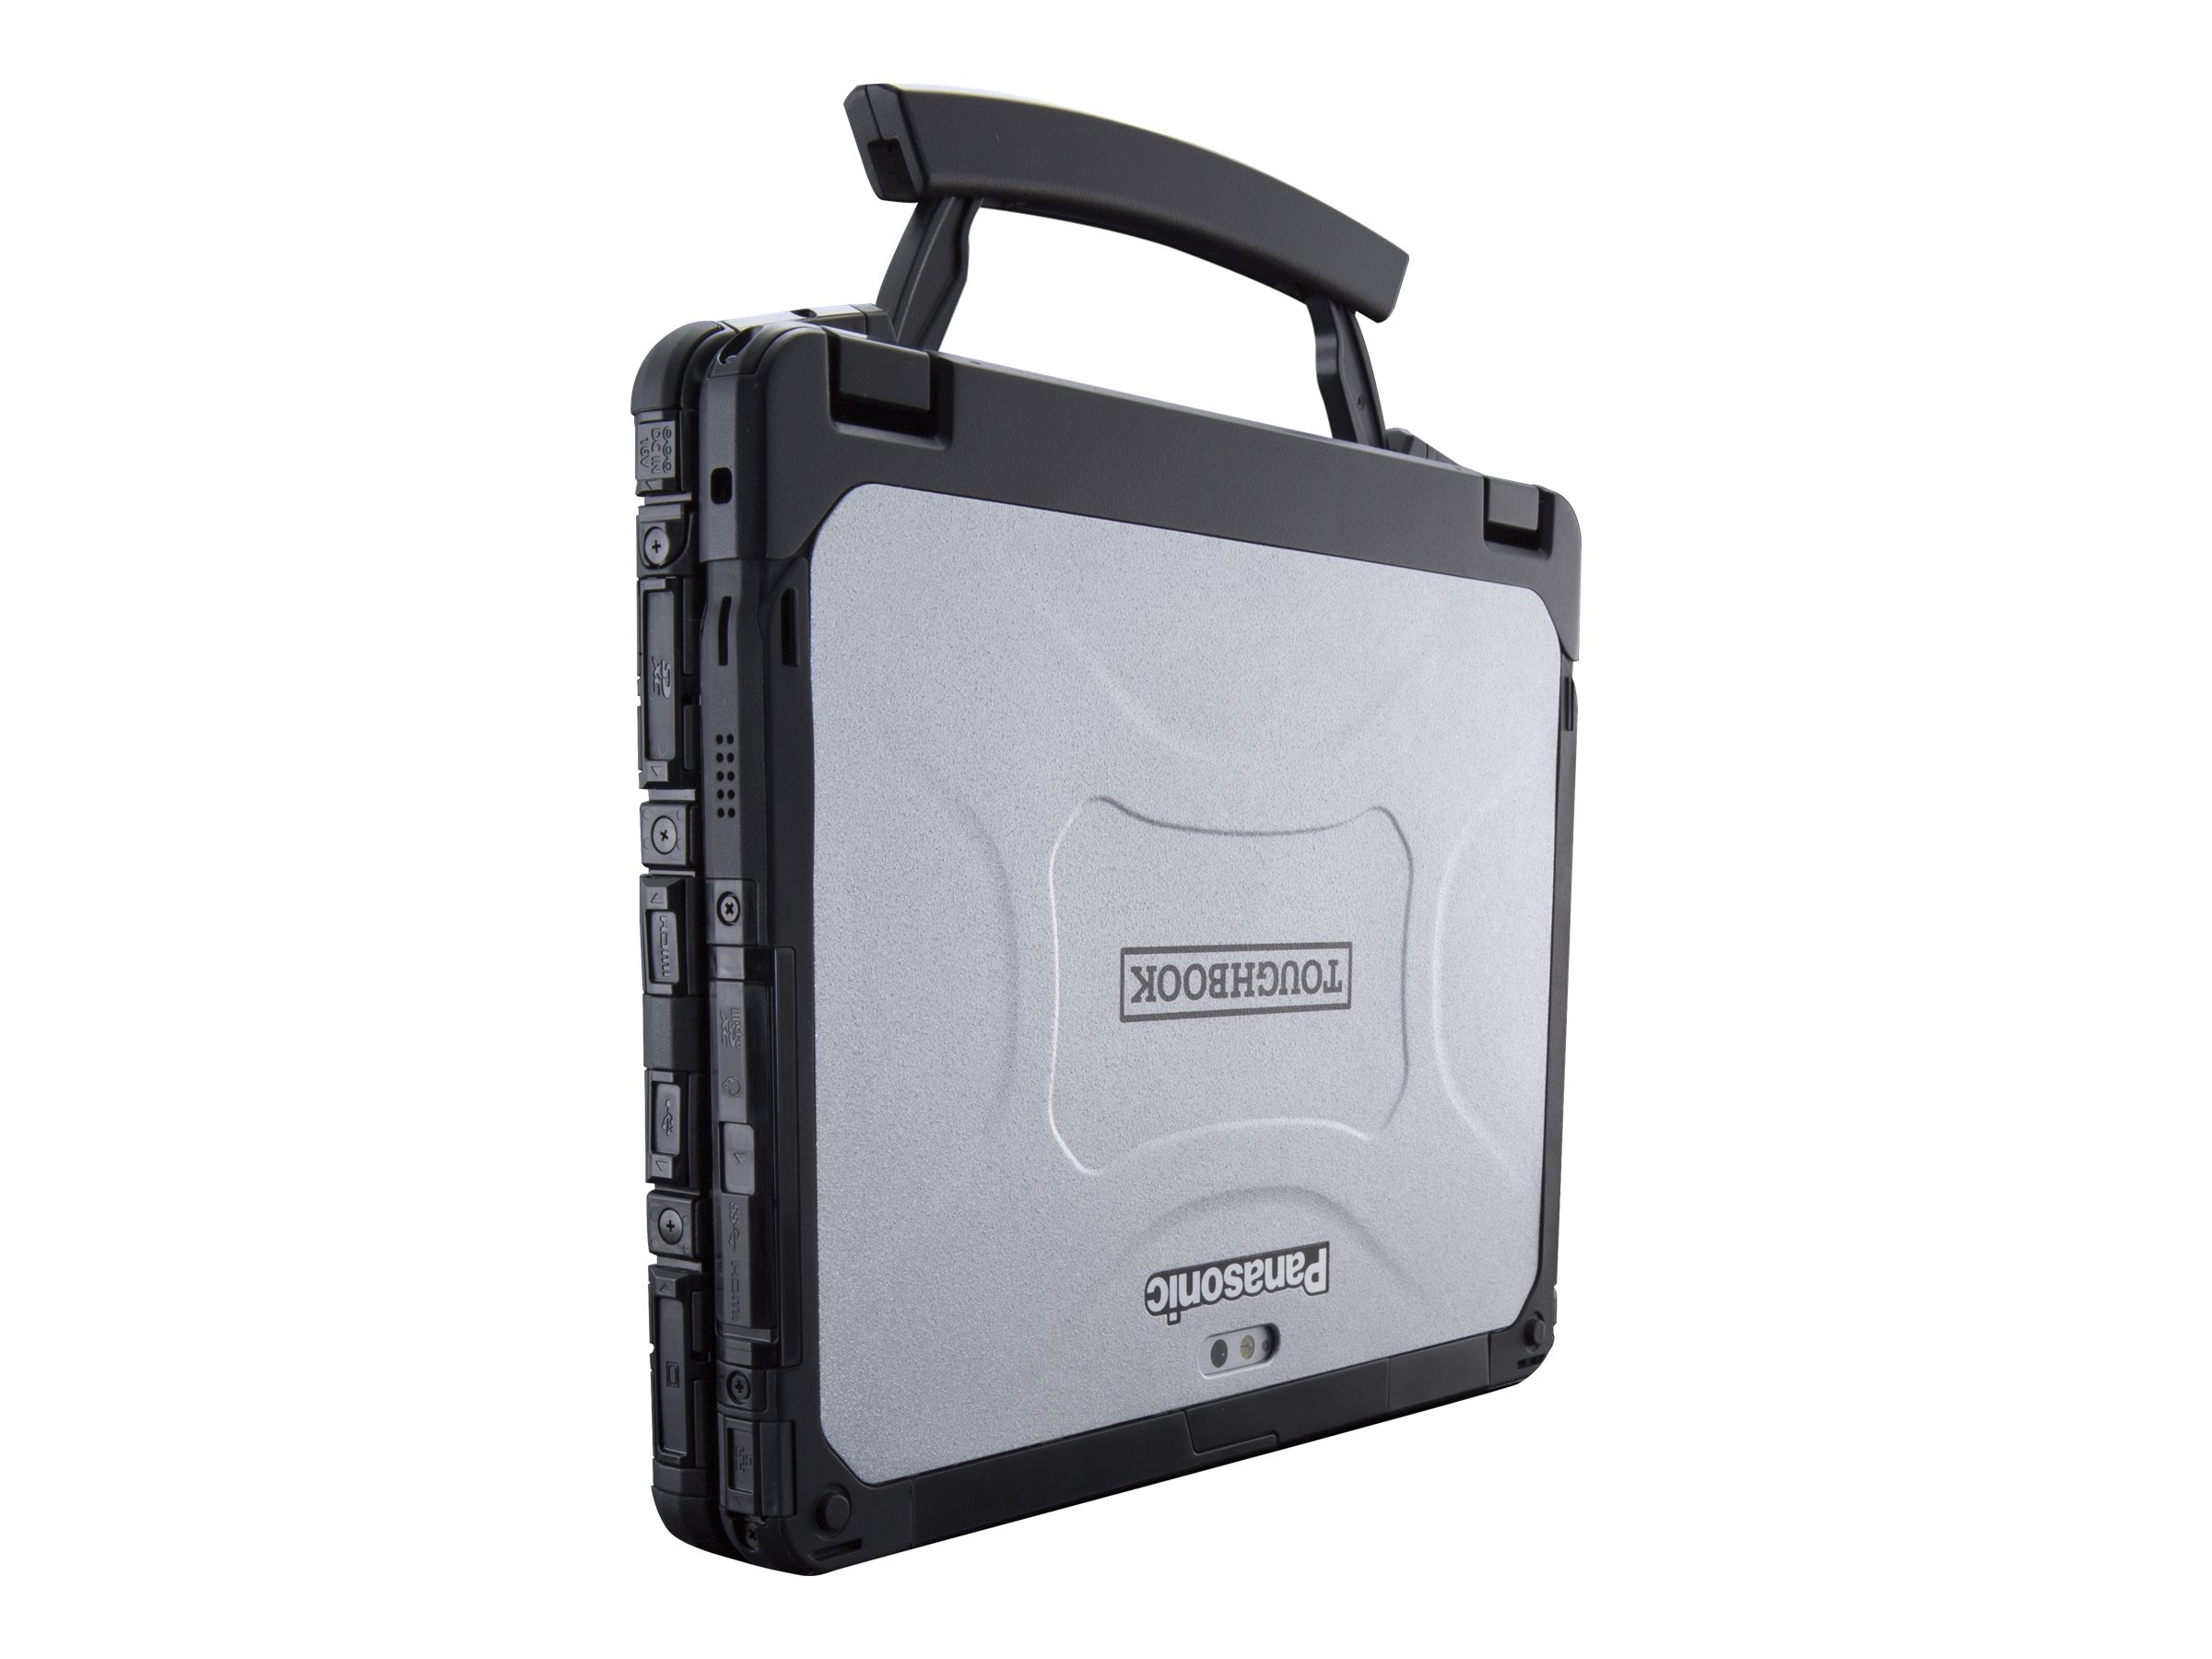 Panasonic Toughbook 20 10.1 WUXGA MT, CF-20A3102VM